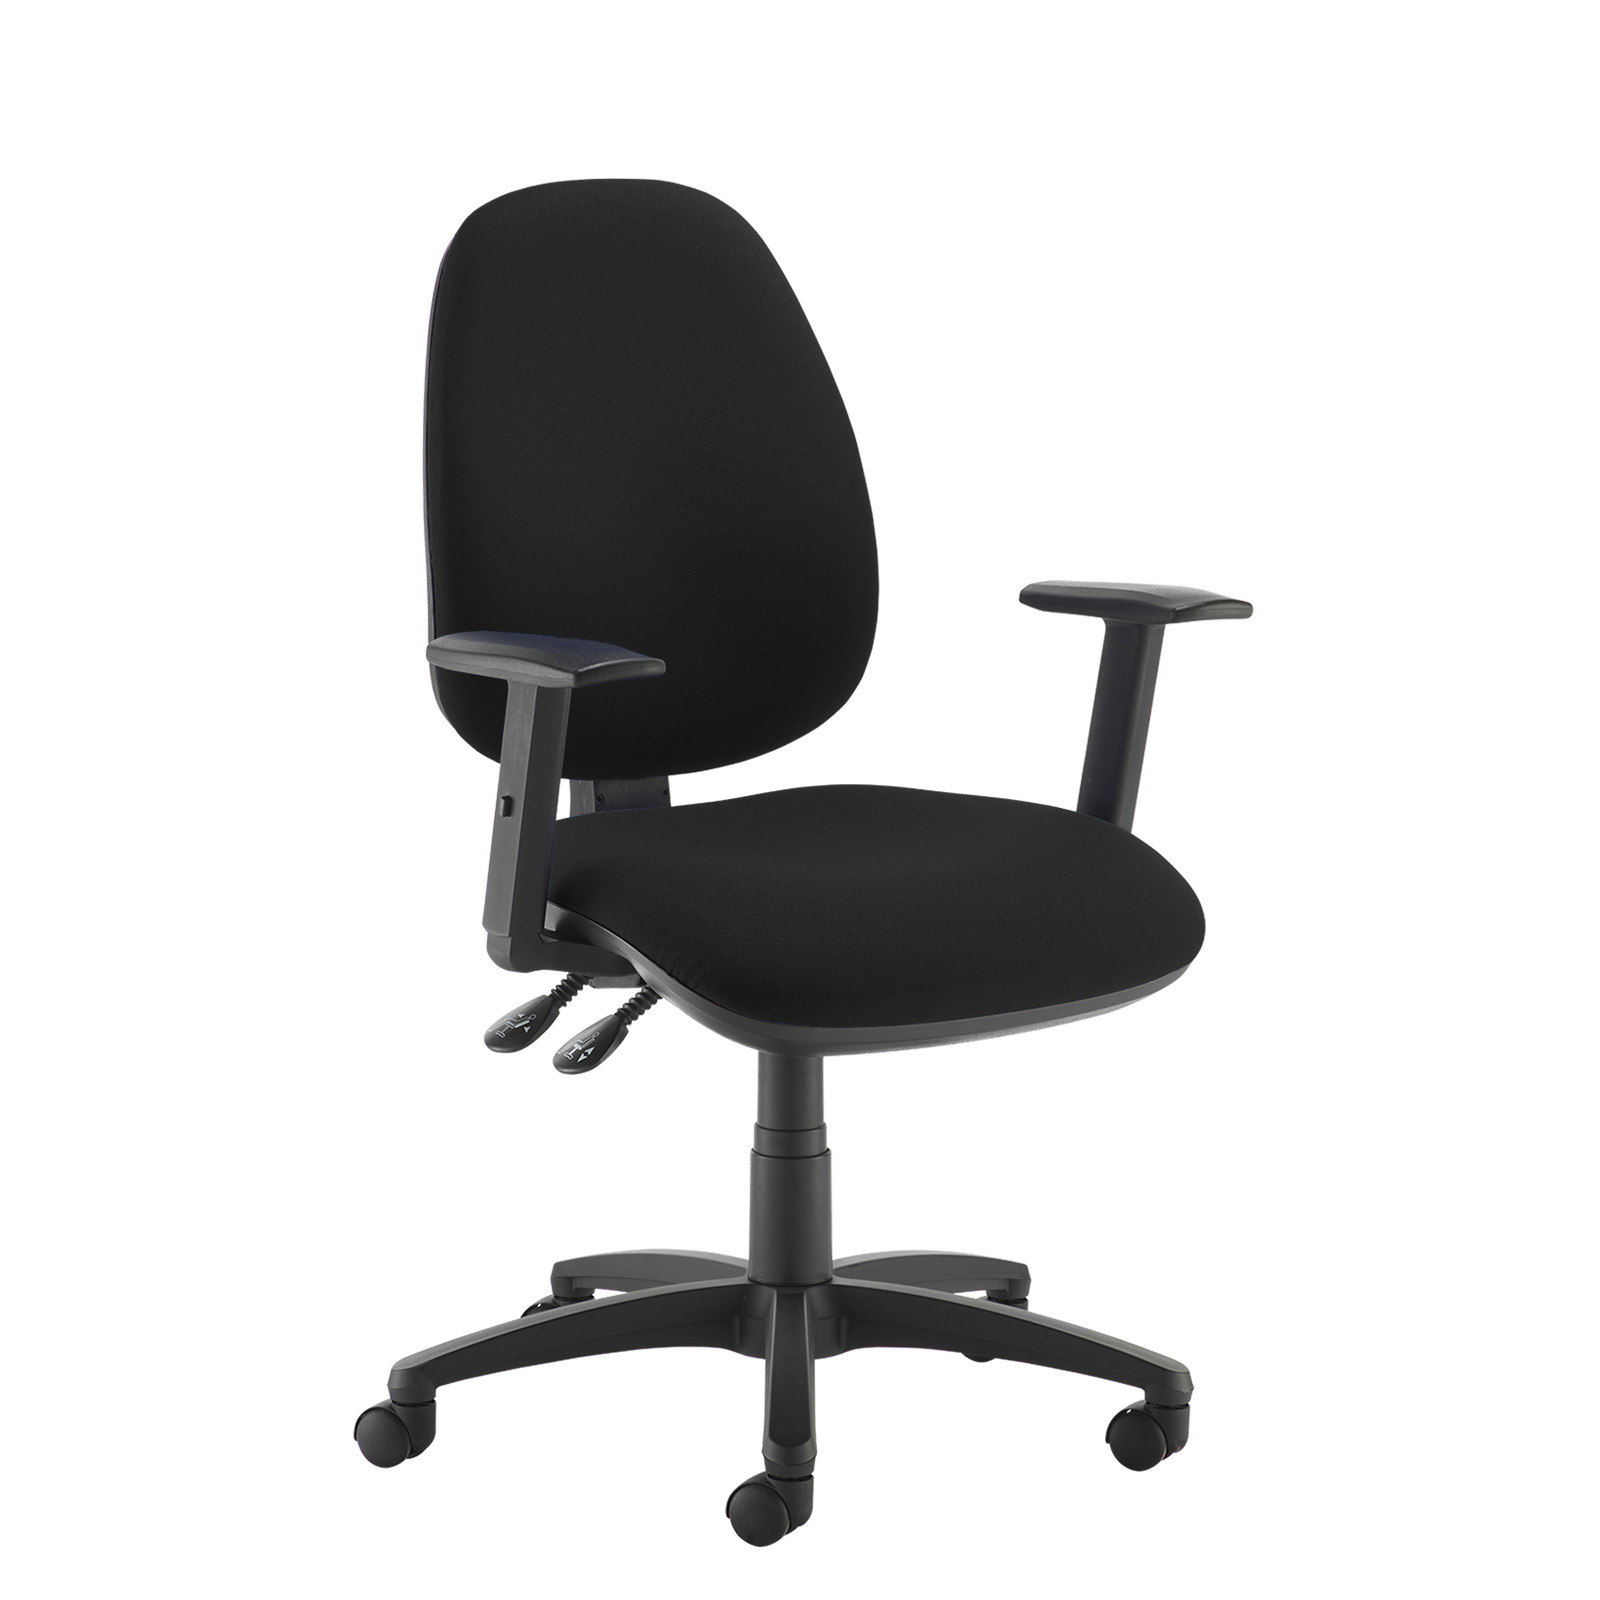 Desk Chairs Jota high back operator chair with adjustable arms - black